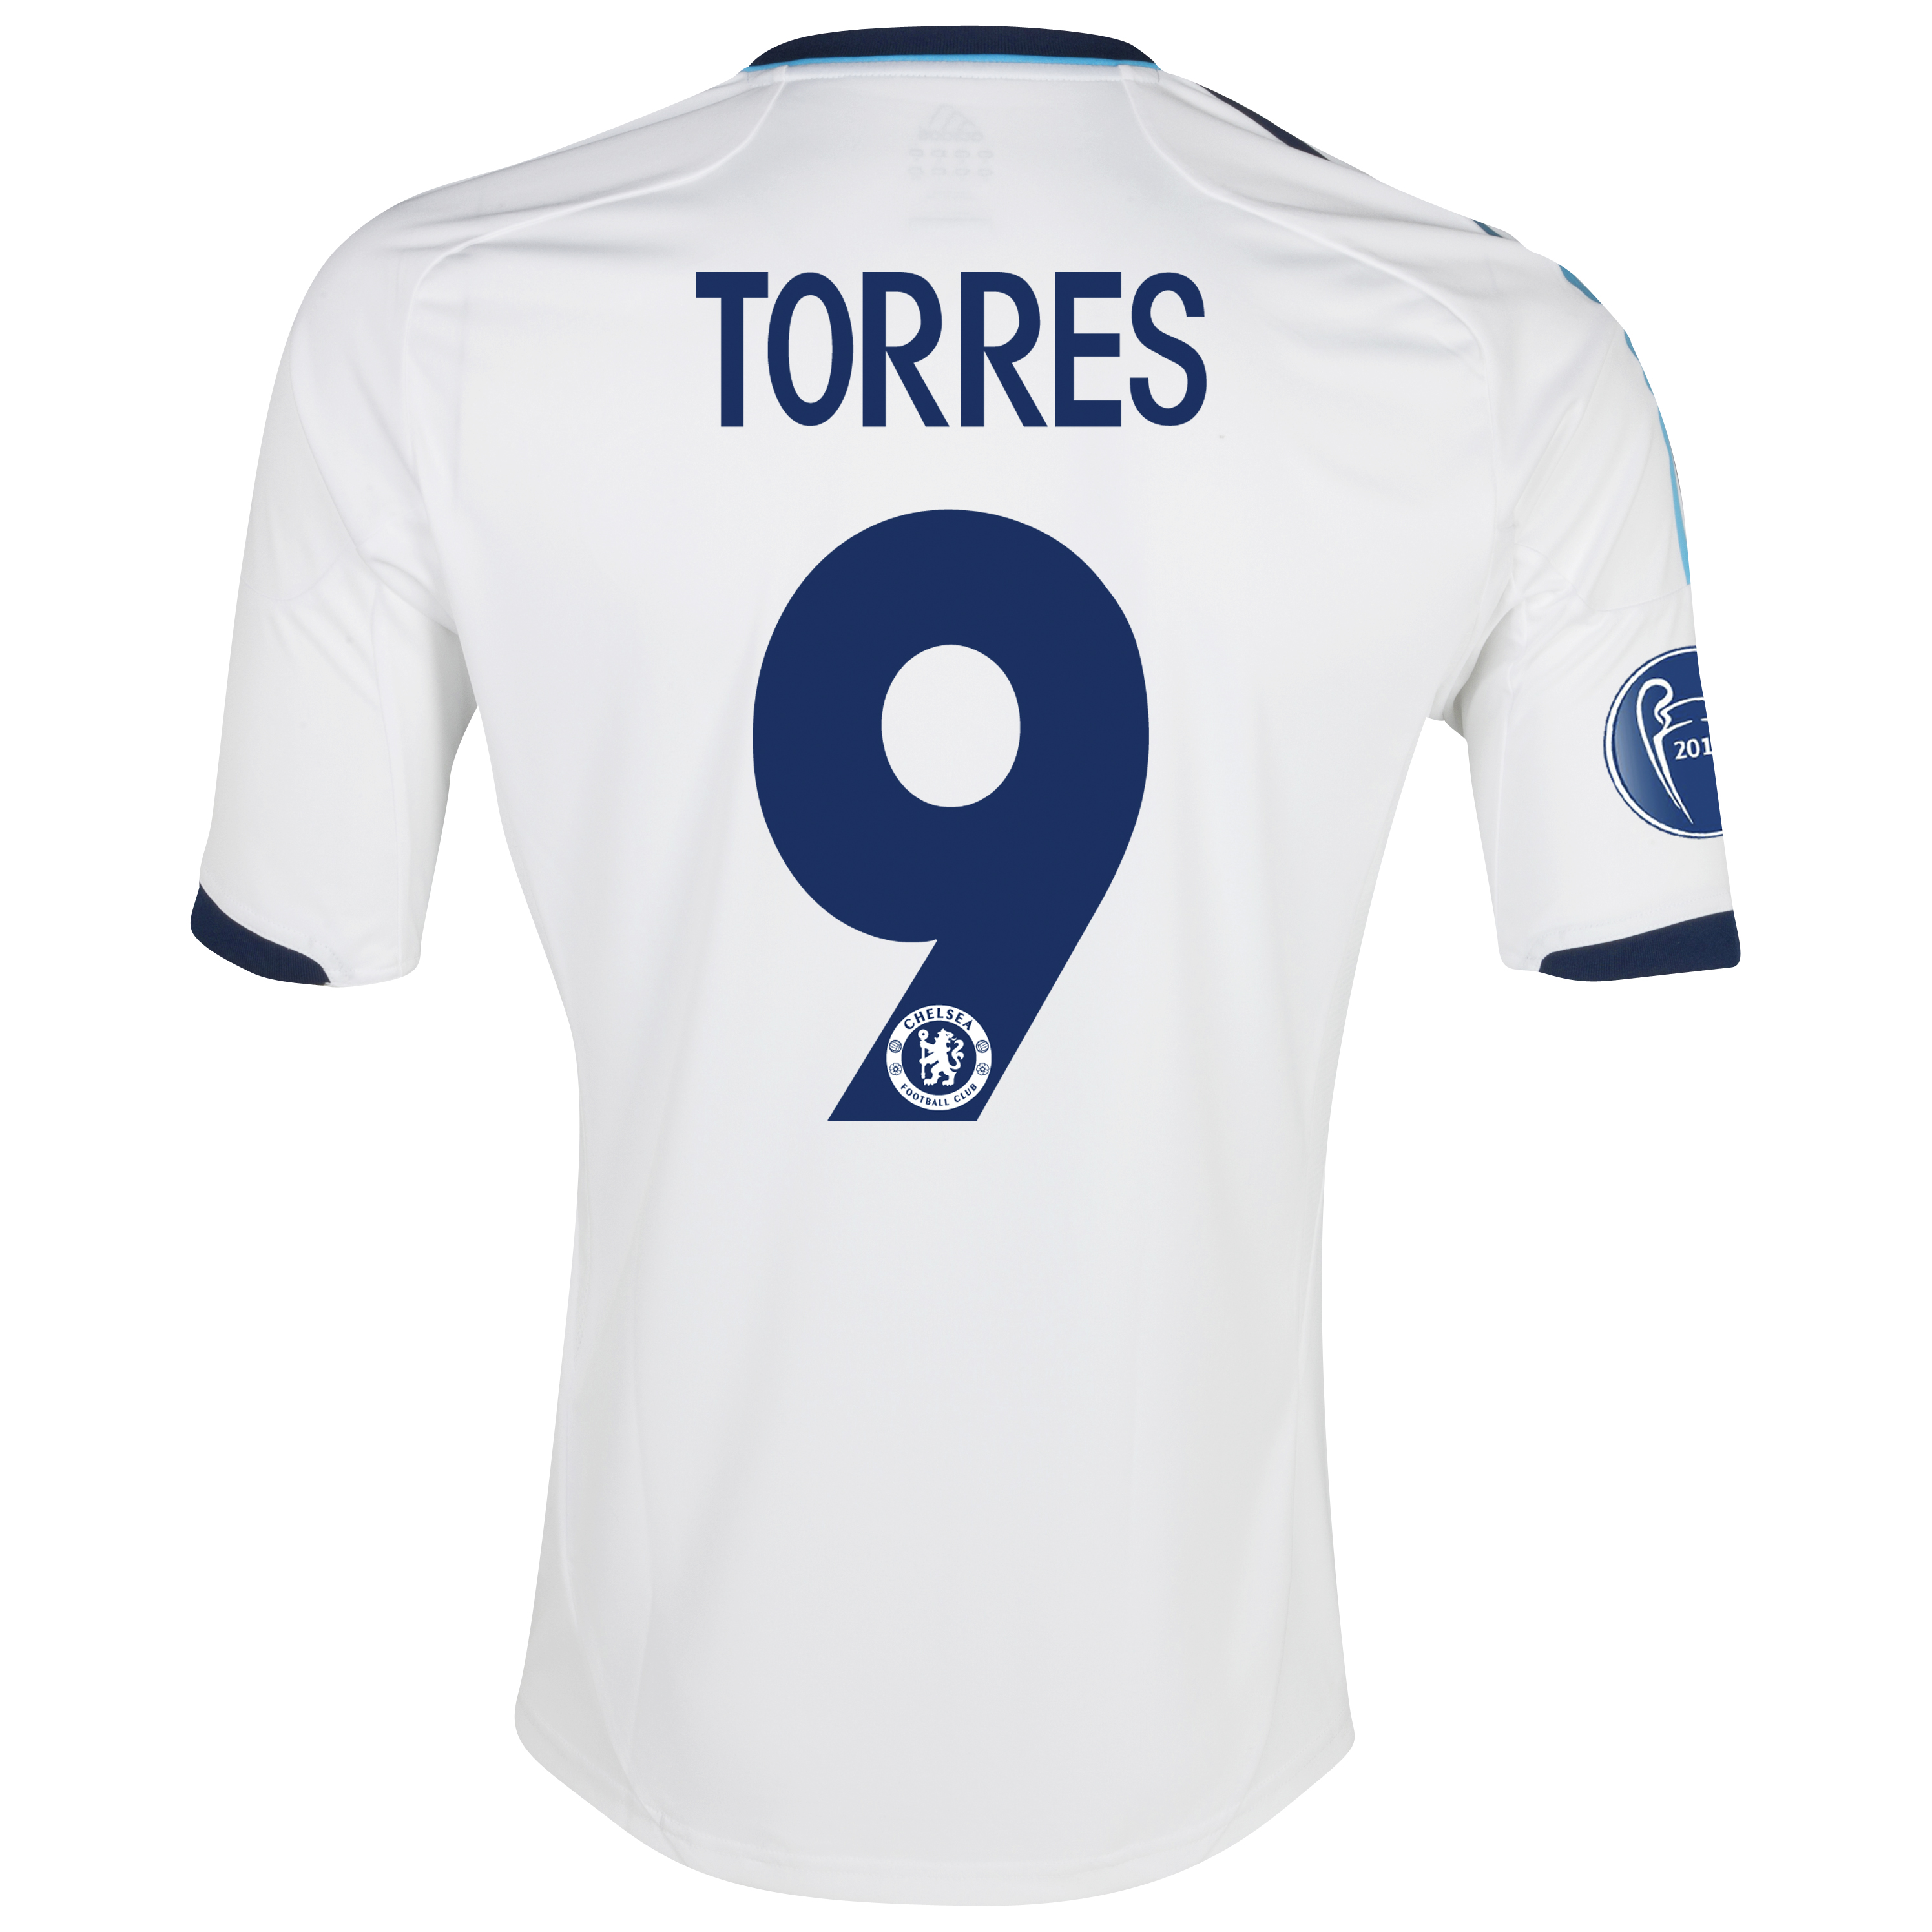 Chelsea UEFA Champions League Shirt Away Shirt 2012/13 - with Torres 9 printing